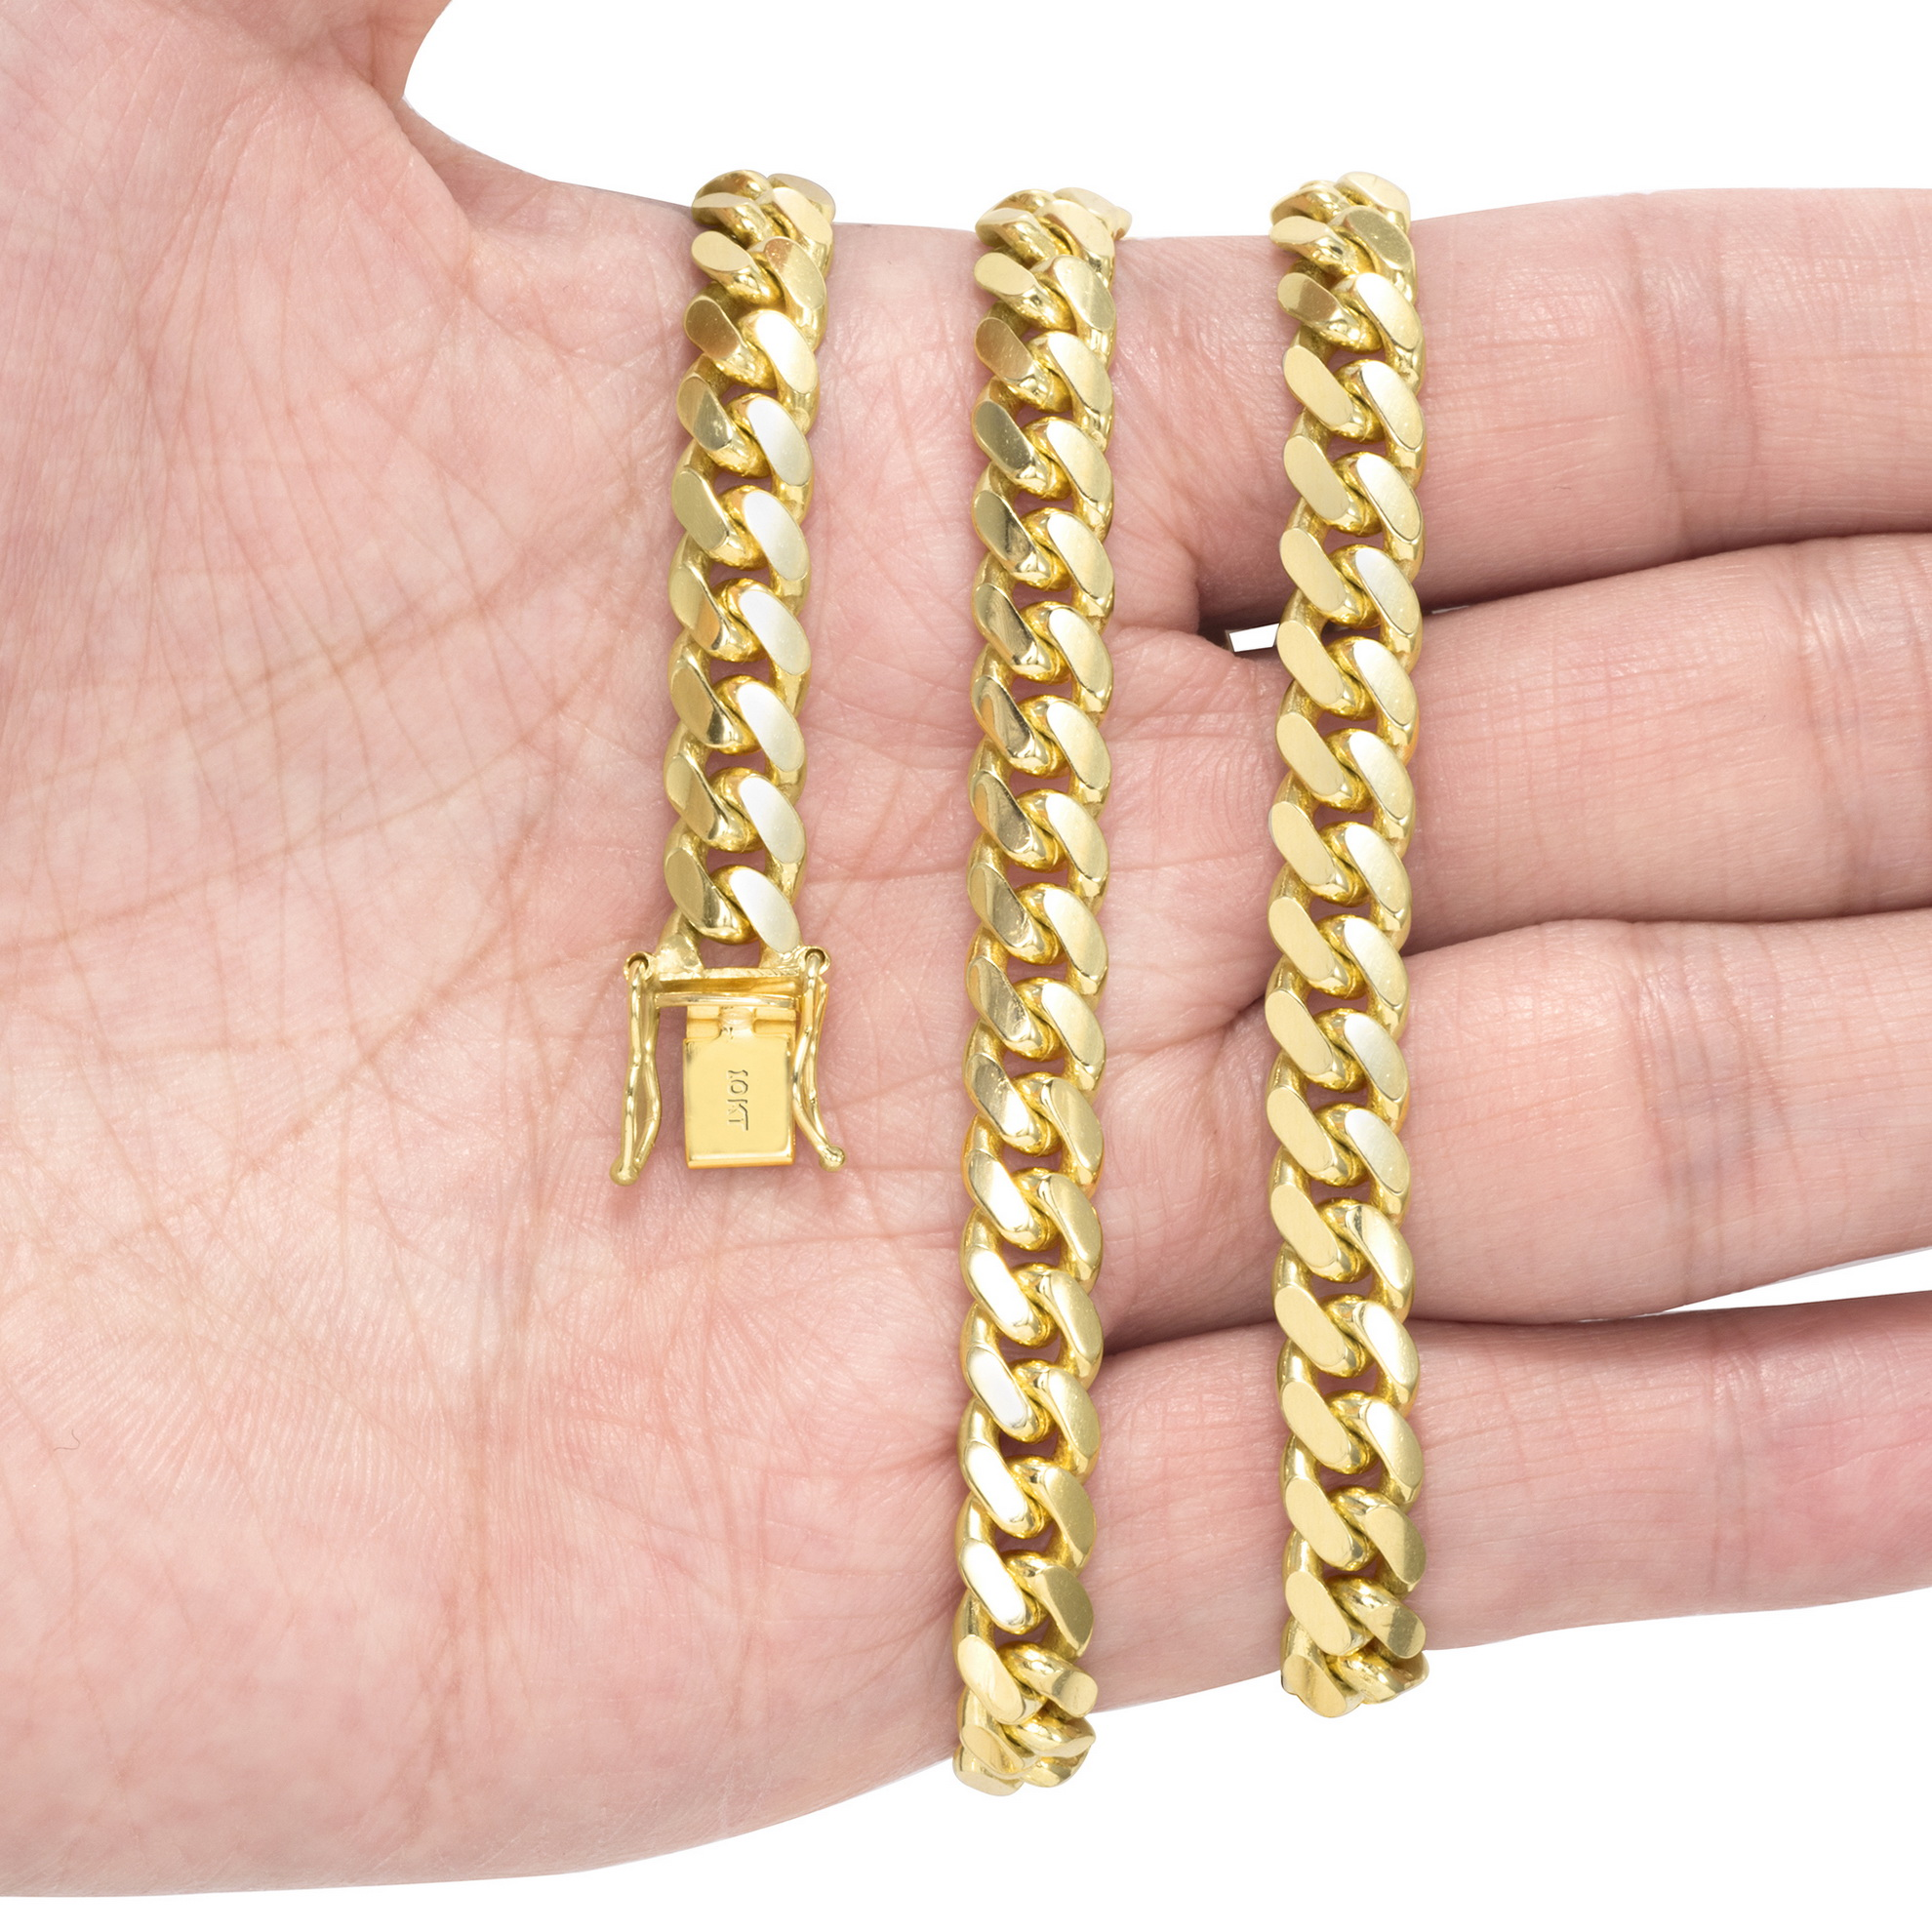 10K-Yellow-Gold-Solid-2-7mm-10mm-Miami-Cuban-Link-Chain-Necklace-Bracelet-7-034-30-034 thumbnail 24